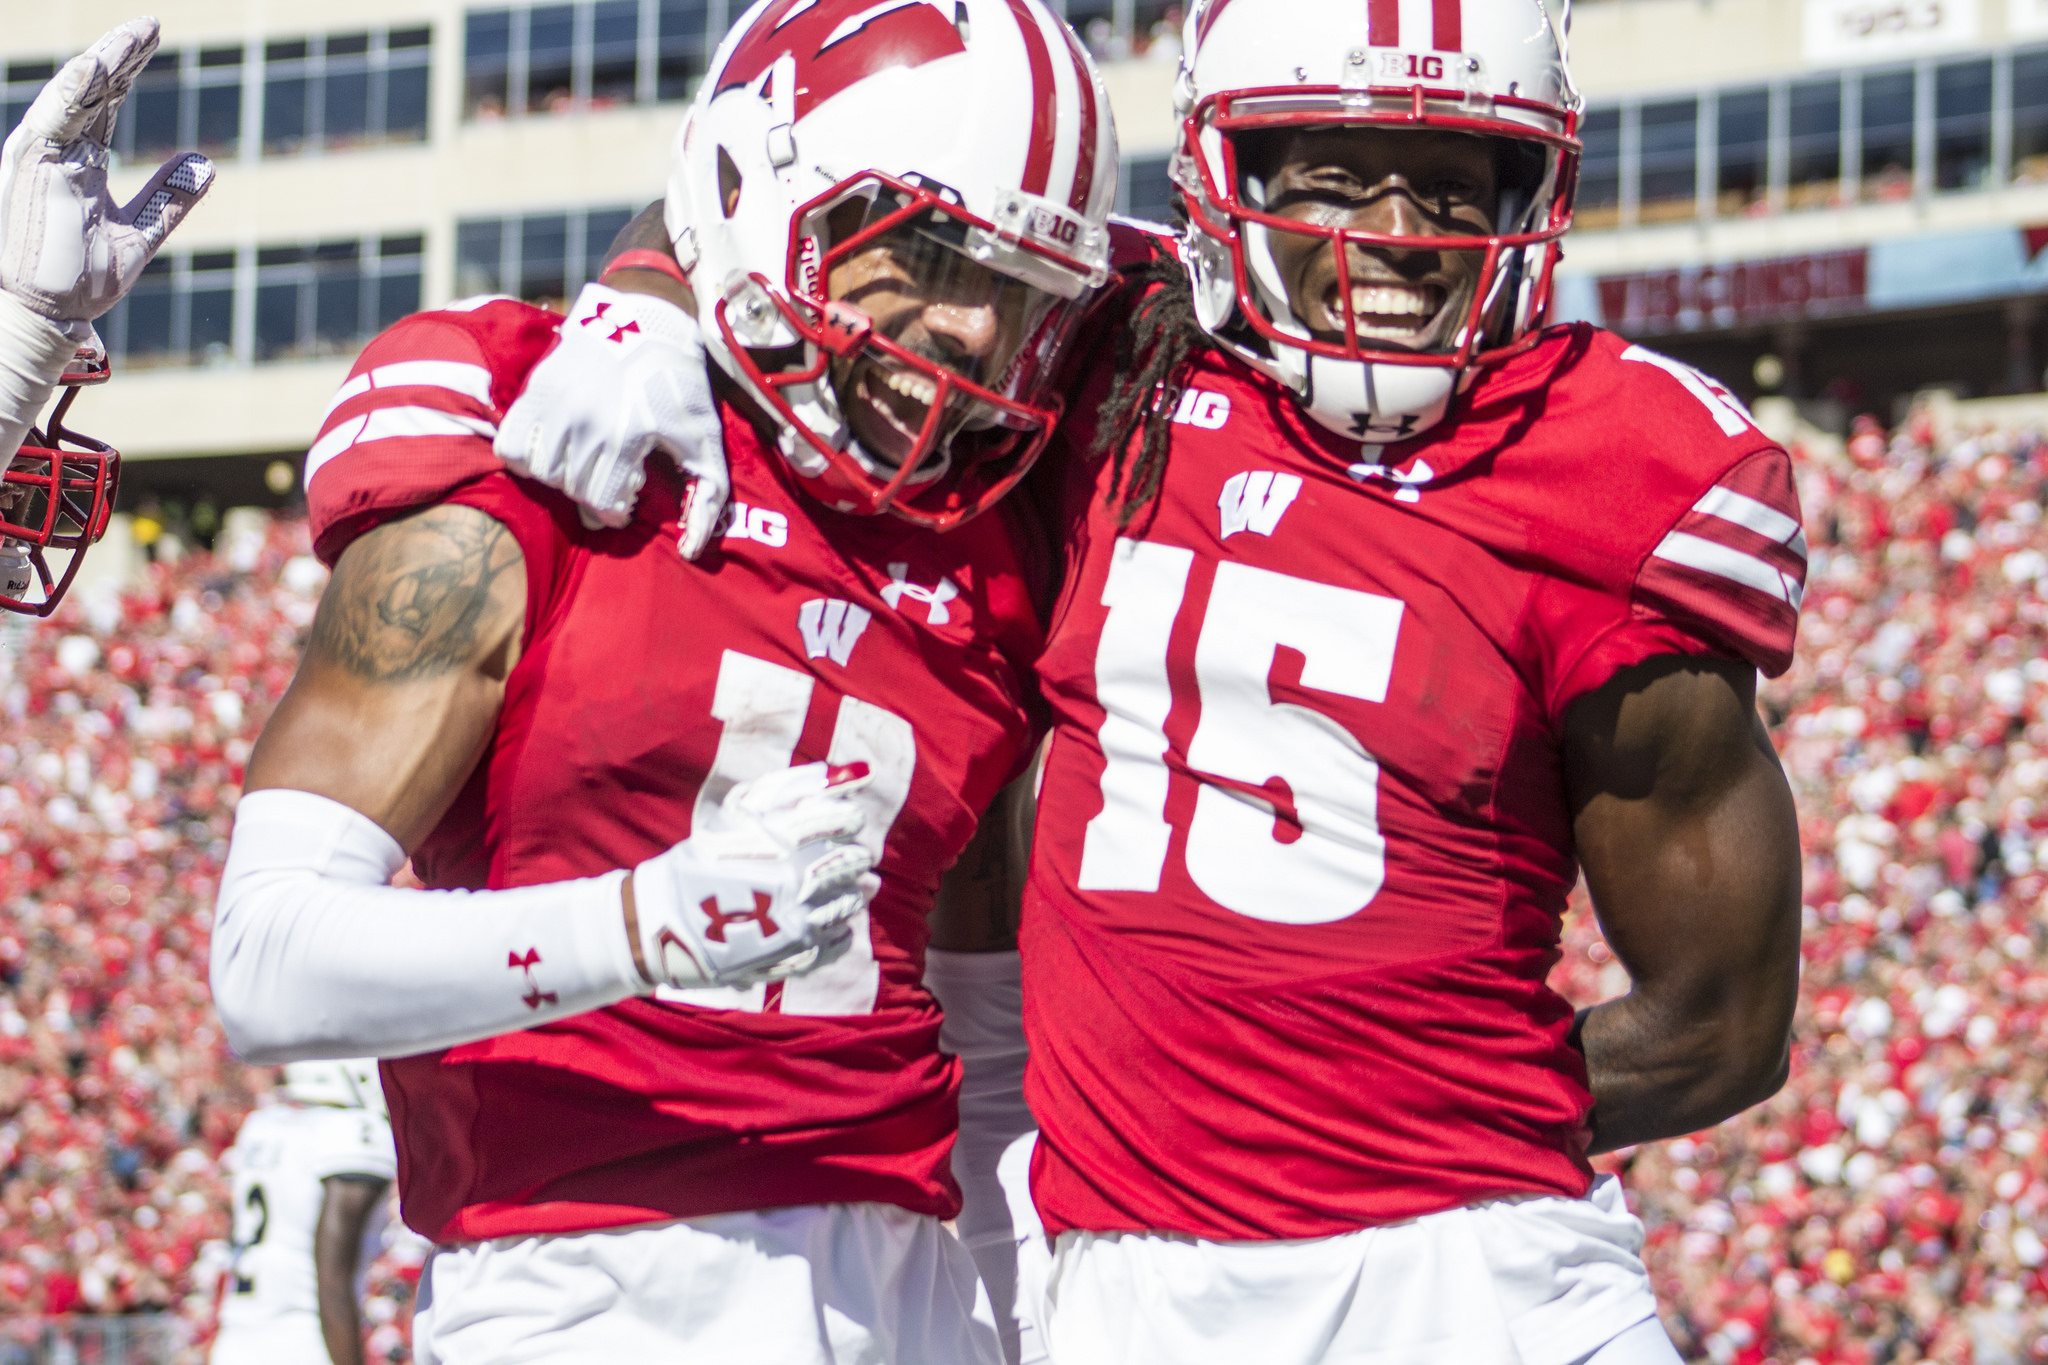 Clement scores twice, No. 10 Wisconsin stuffs Akron 54-10